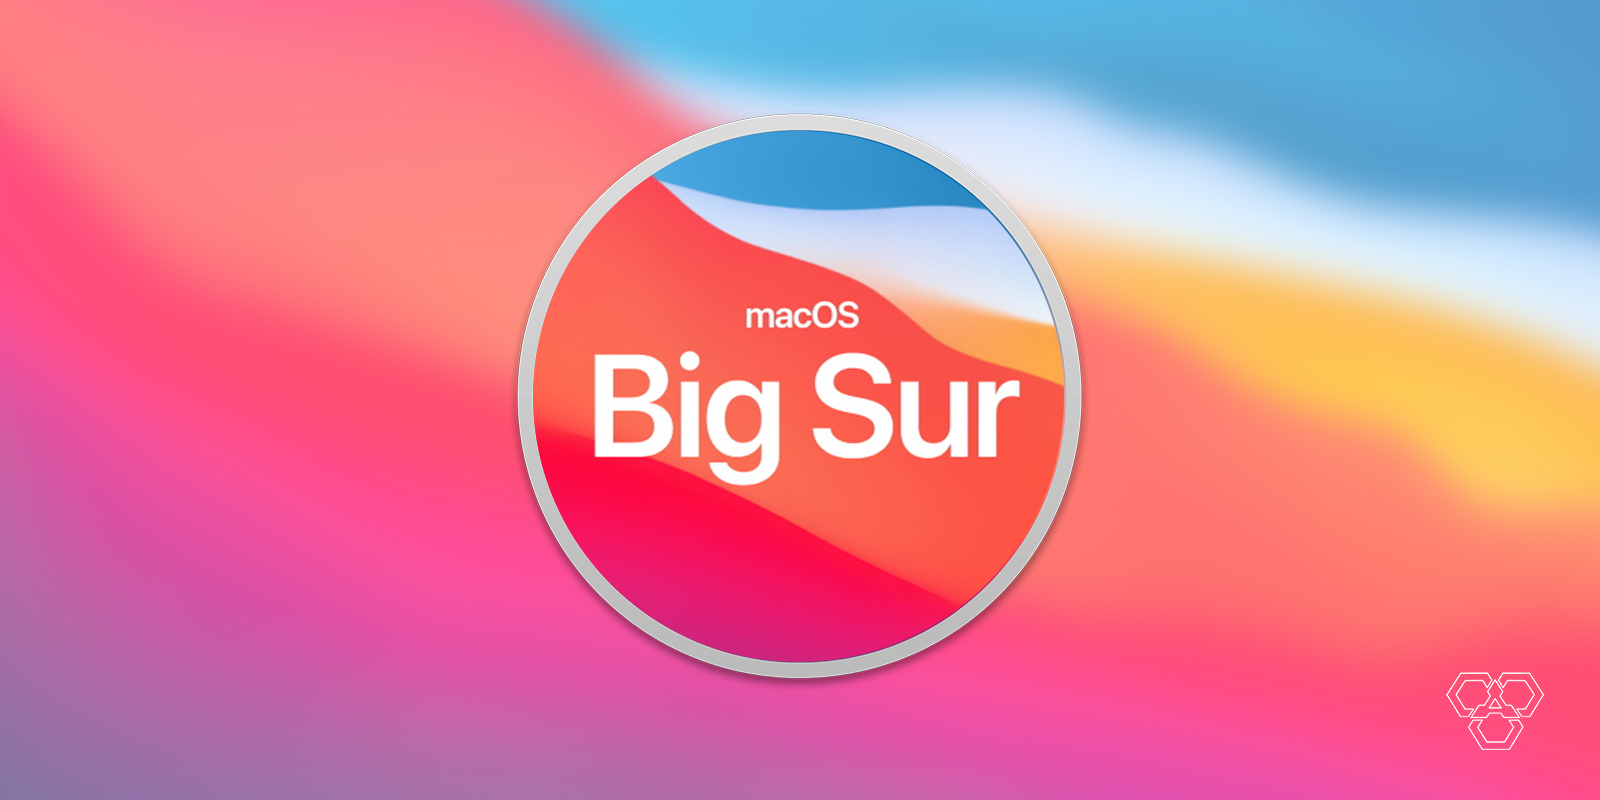 macOS Big Sur is now available to download